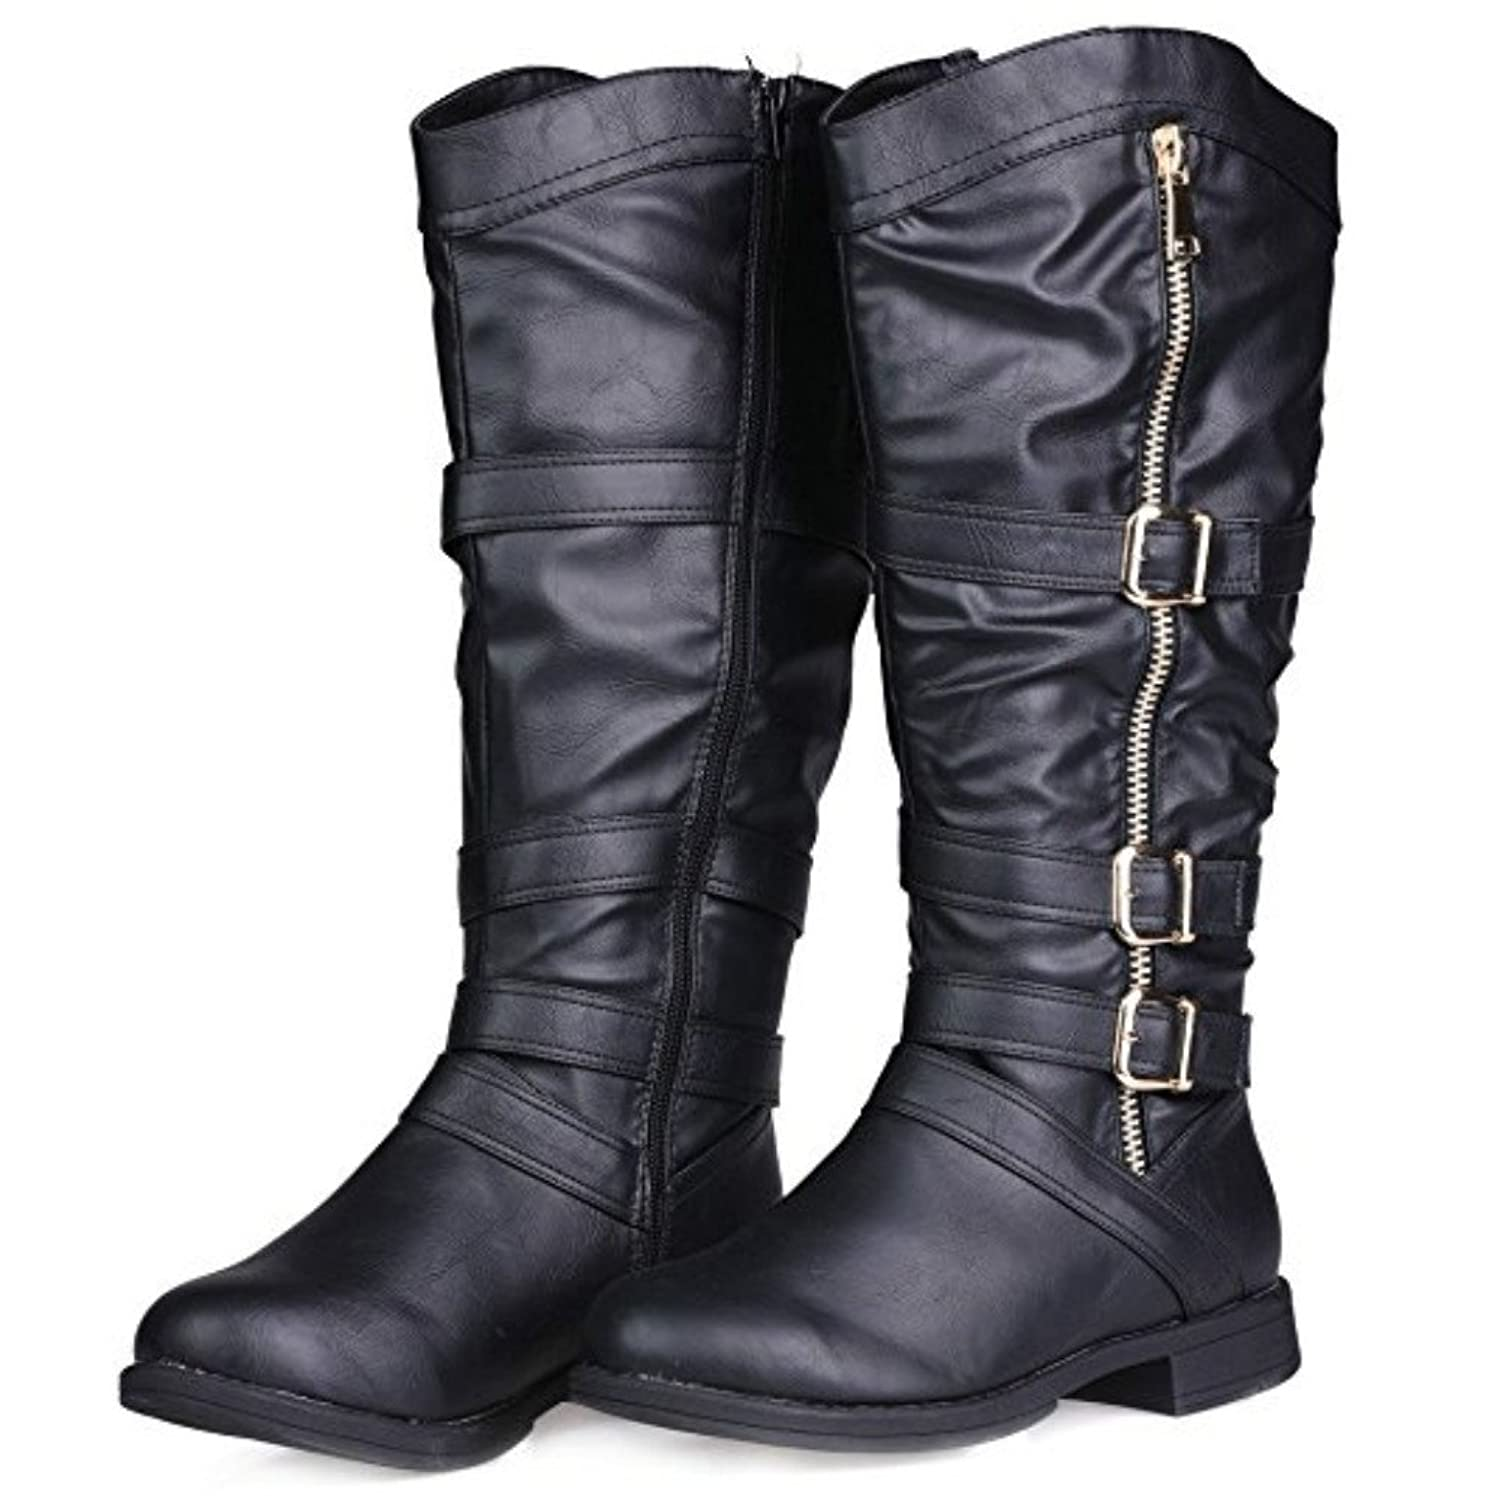 Dniu Women's Knee High Boots, Stretchy Wide Calf Faux Leather Flat Boot  With Multi Buckle Straps(Black, 5.5 UK): Amazon.co.uk: Shoes & Bags